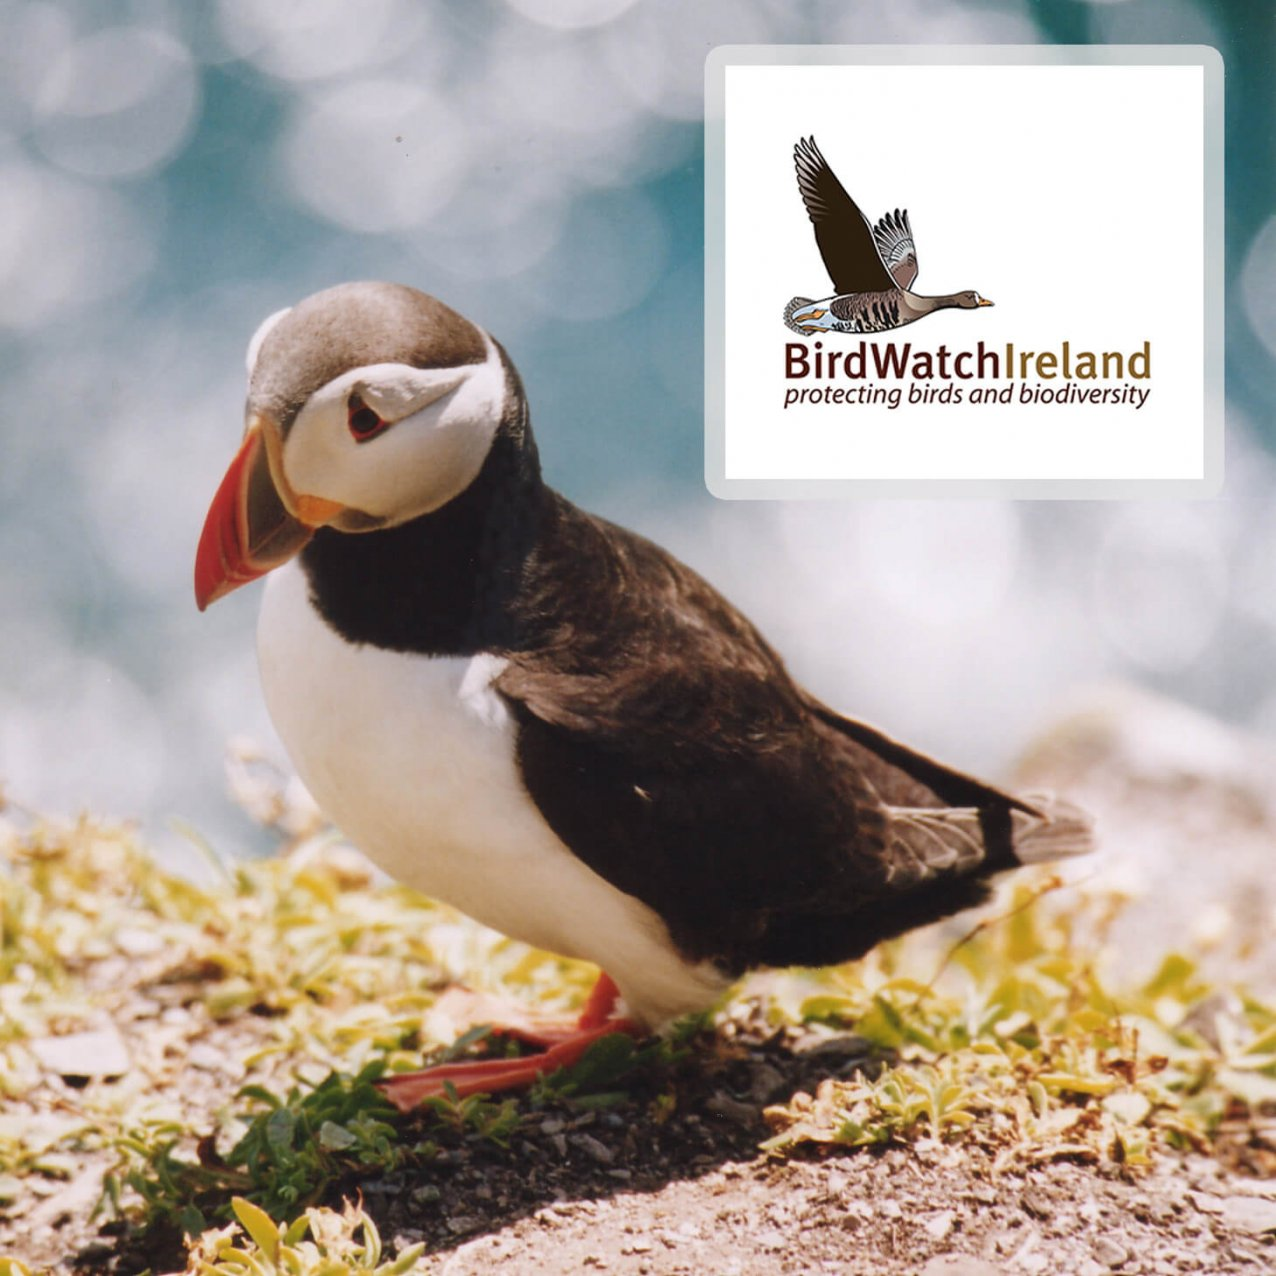 Puffin with BirdWatch Ireland logo